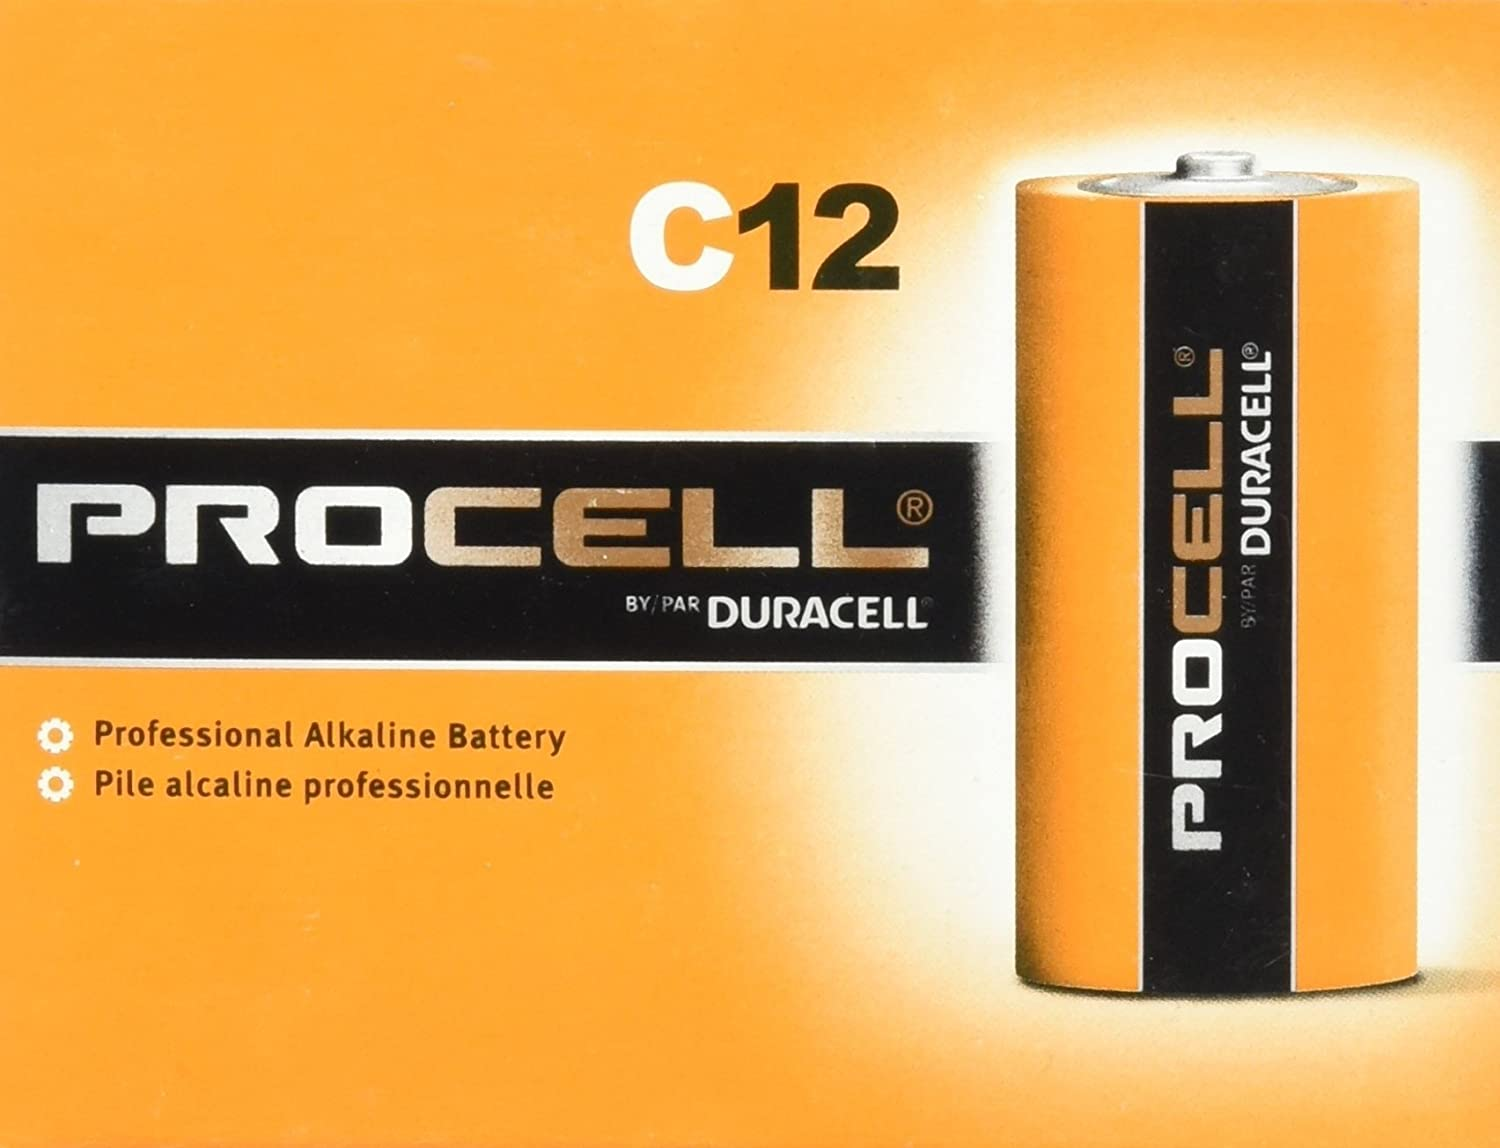 Duracell D12 Procell Professional Alkaline Battery 12Count